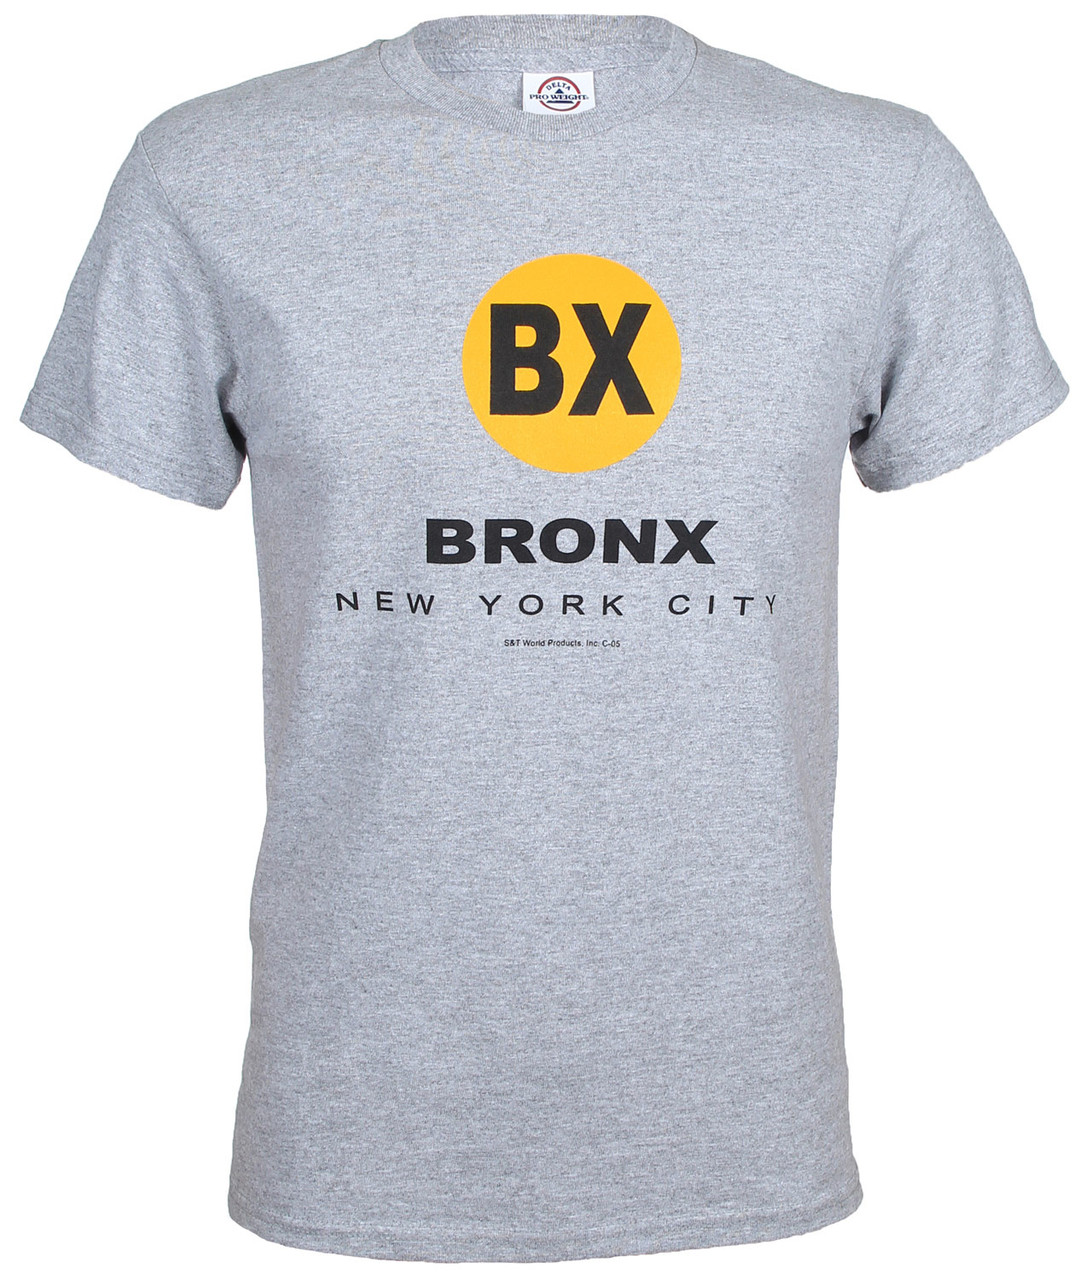 "New York City Bronx ""BX"" Ash Tee photo"